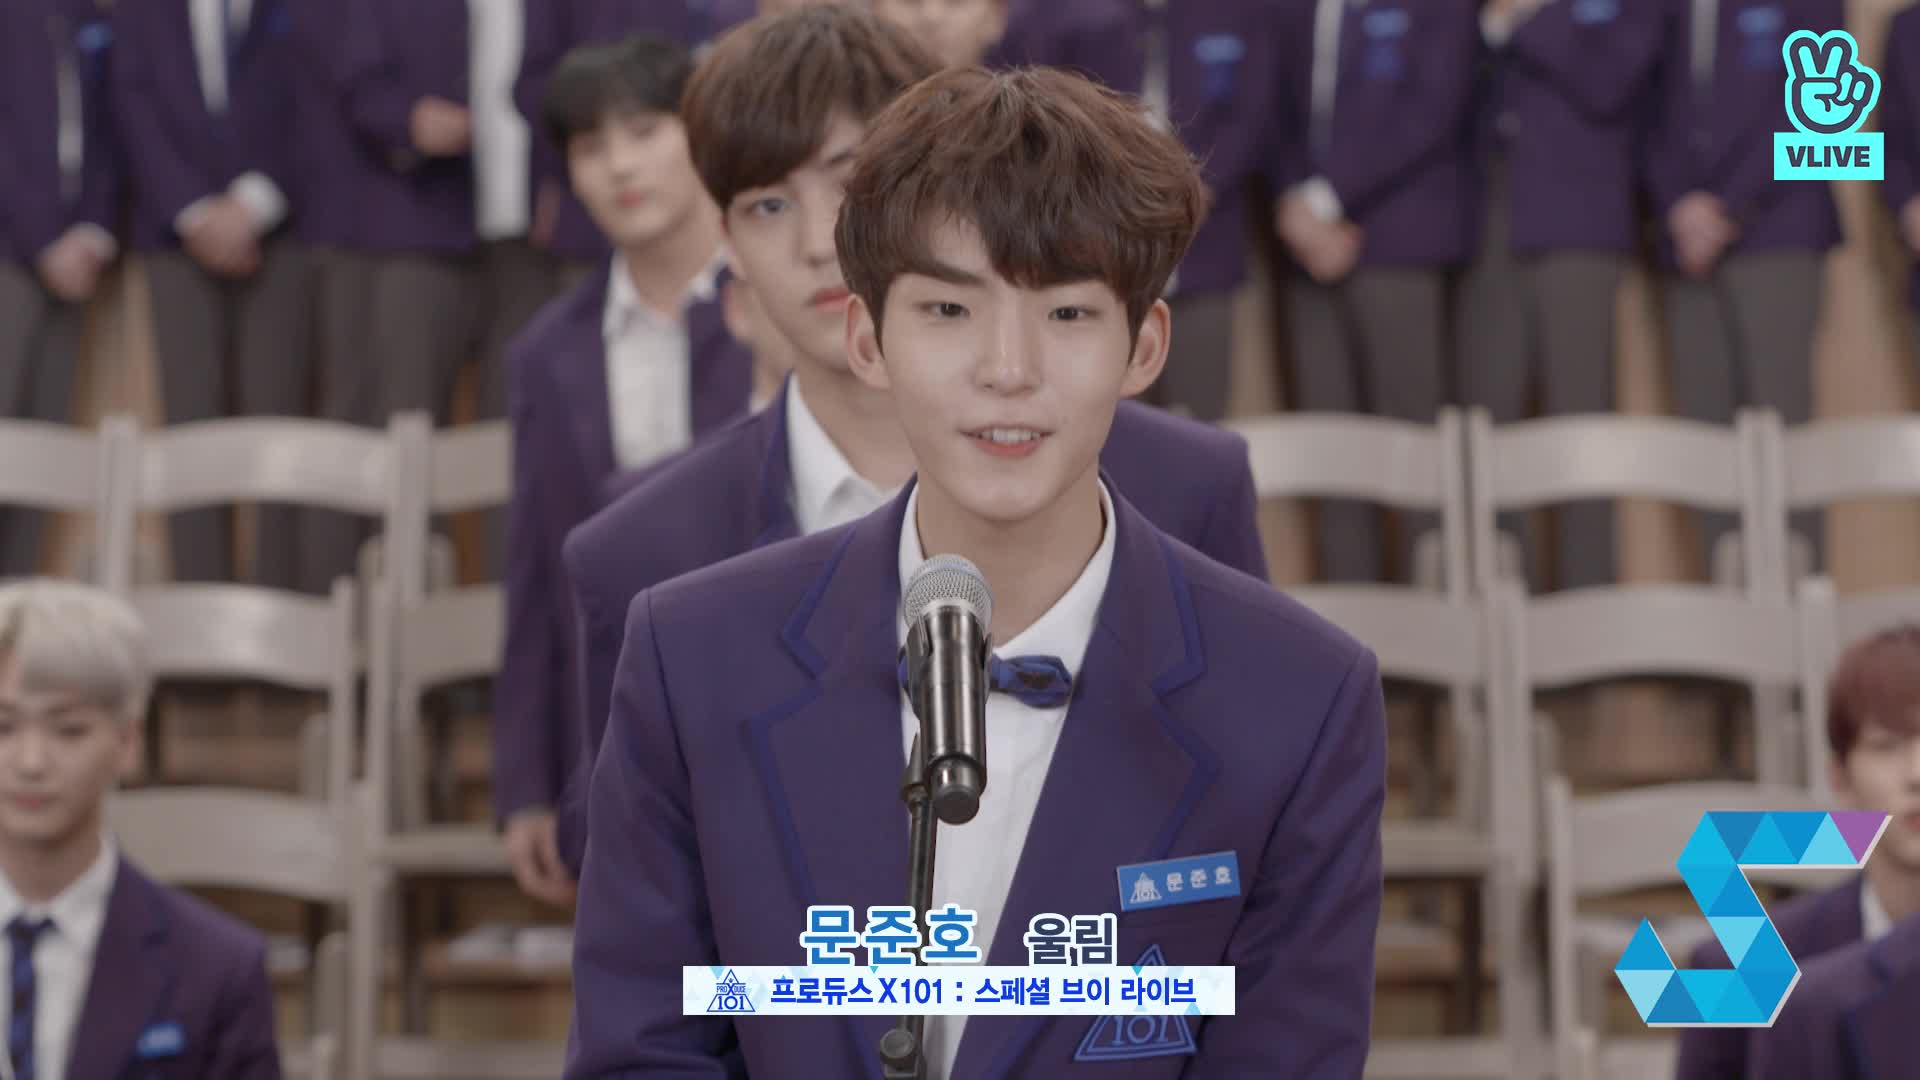 [PRODUCE X 101] 10sec. PR / MOON JUN HO